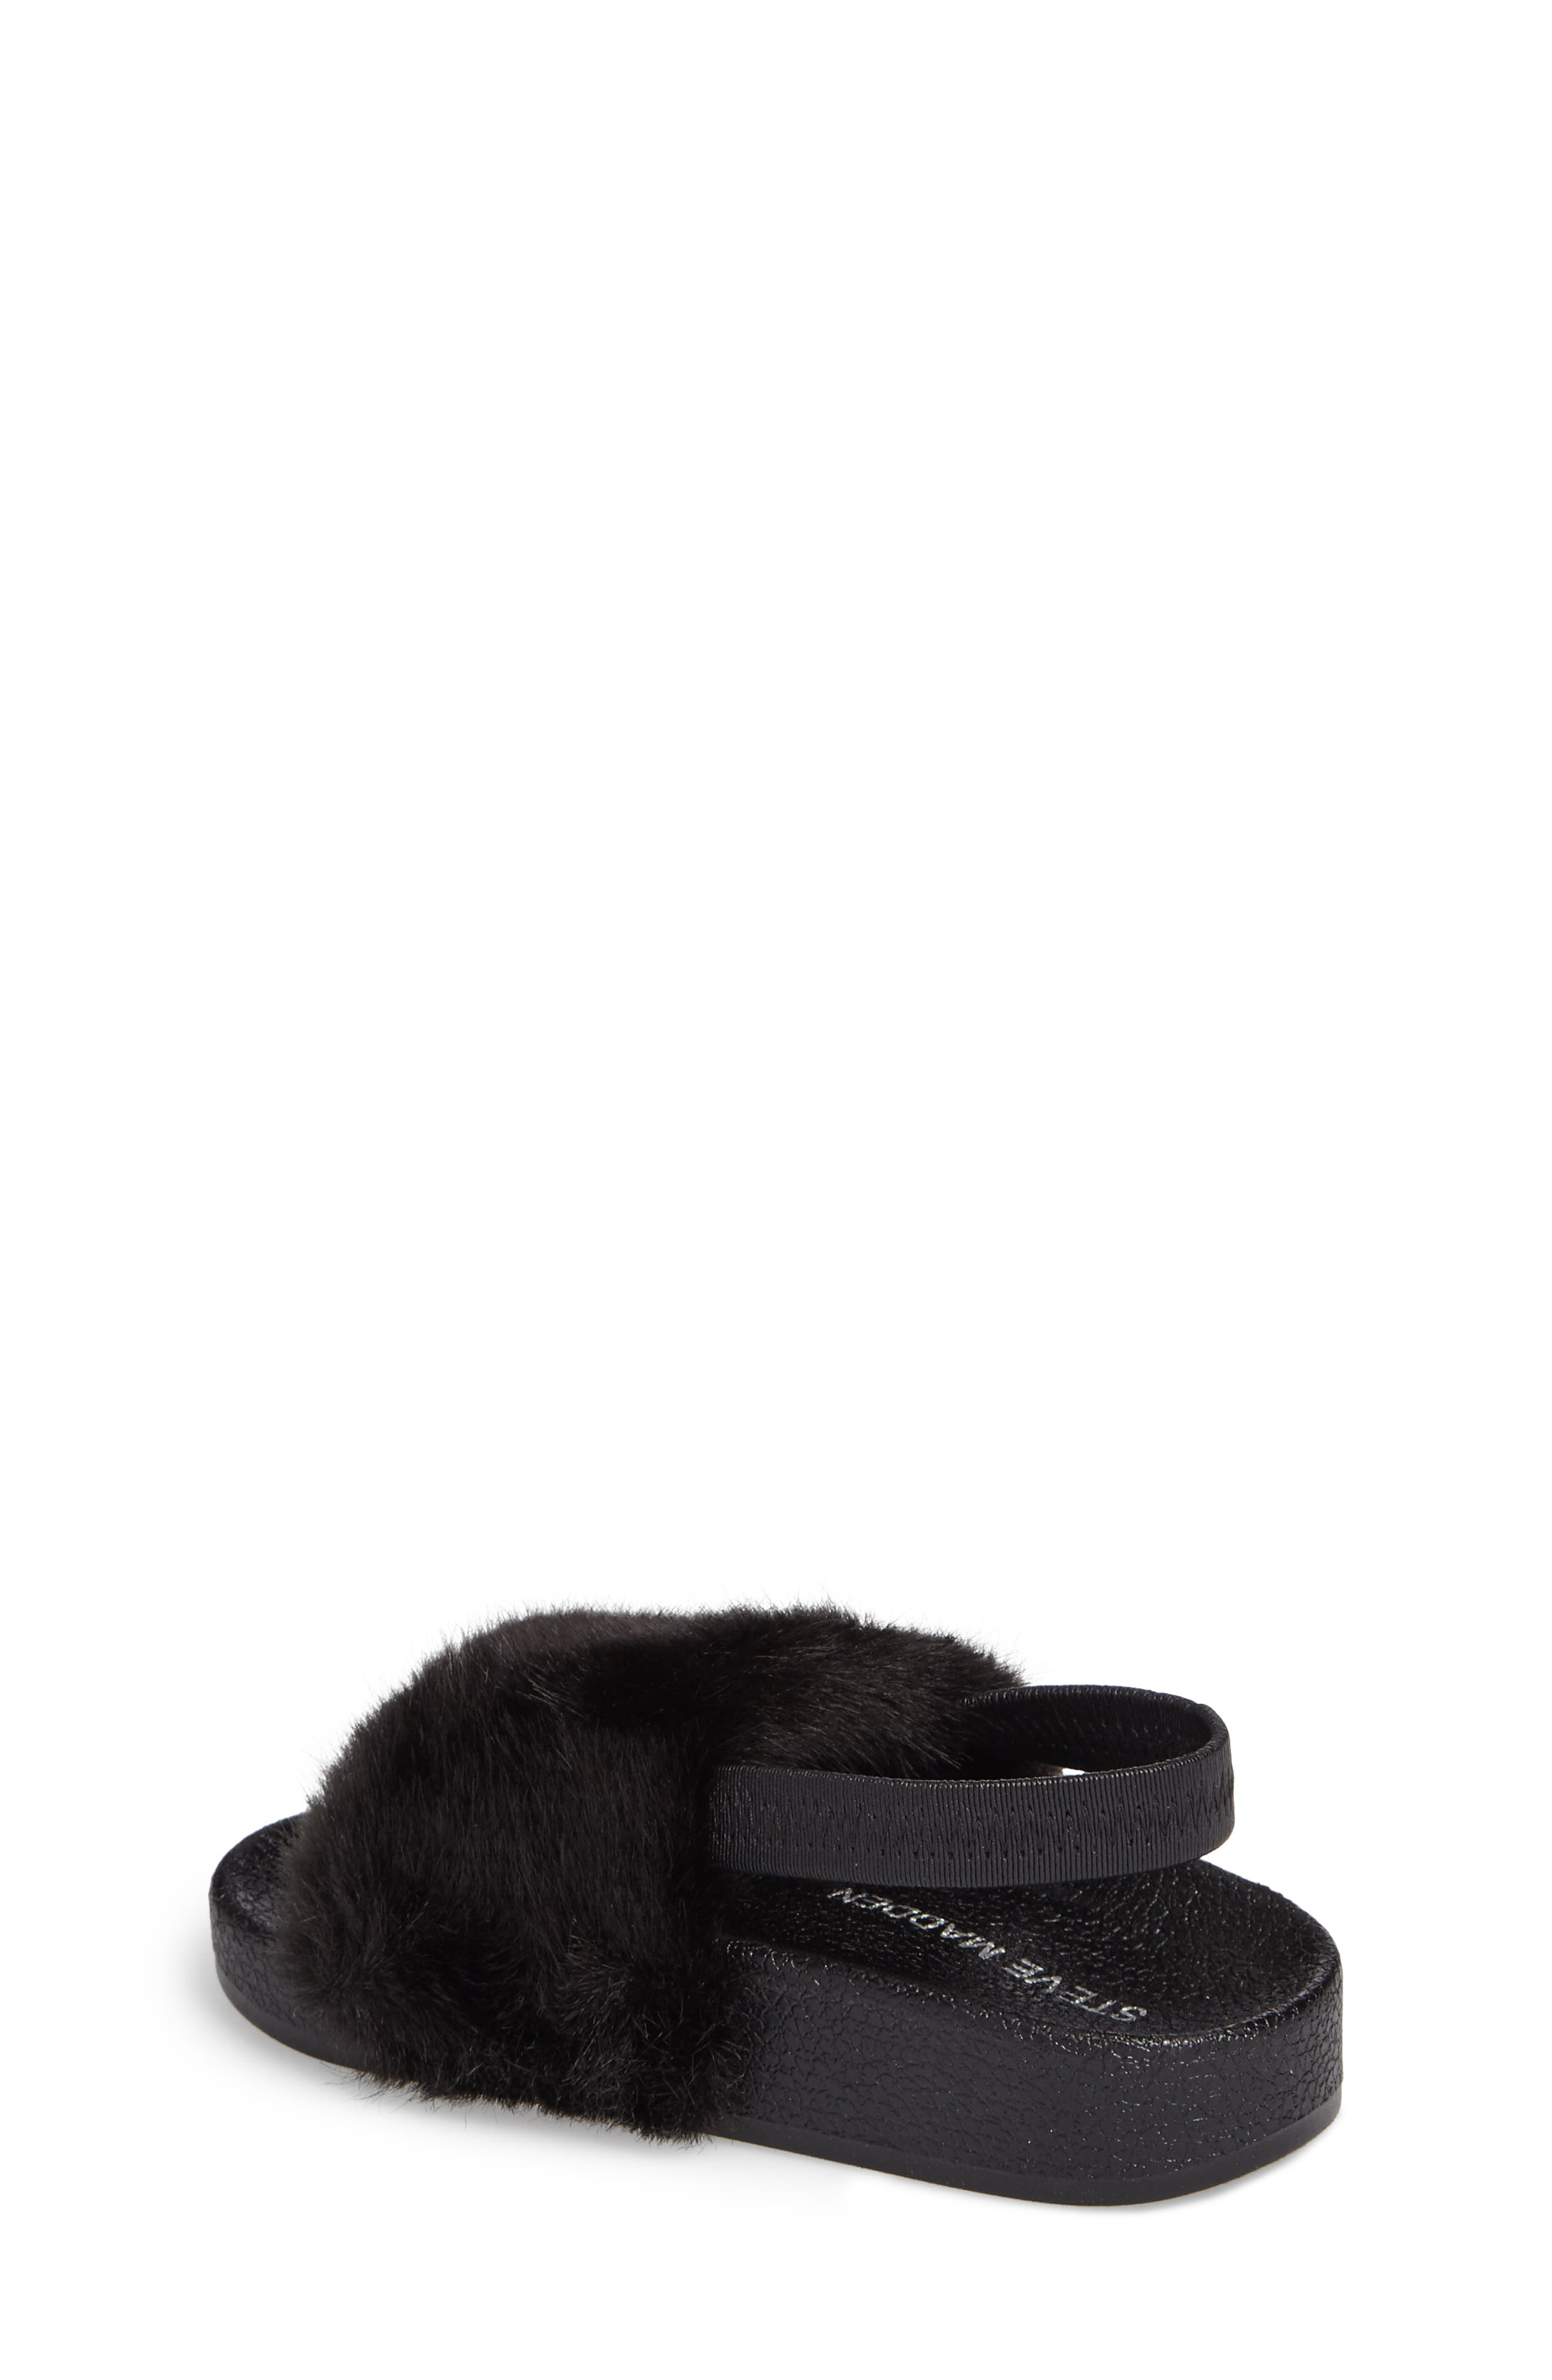 Alternate Image 2  - Steve Madden Tsoftey Faux Fur Slide Sandal (Toddler)